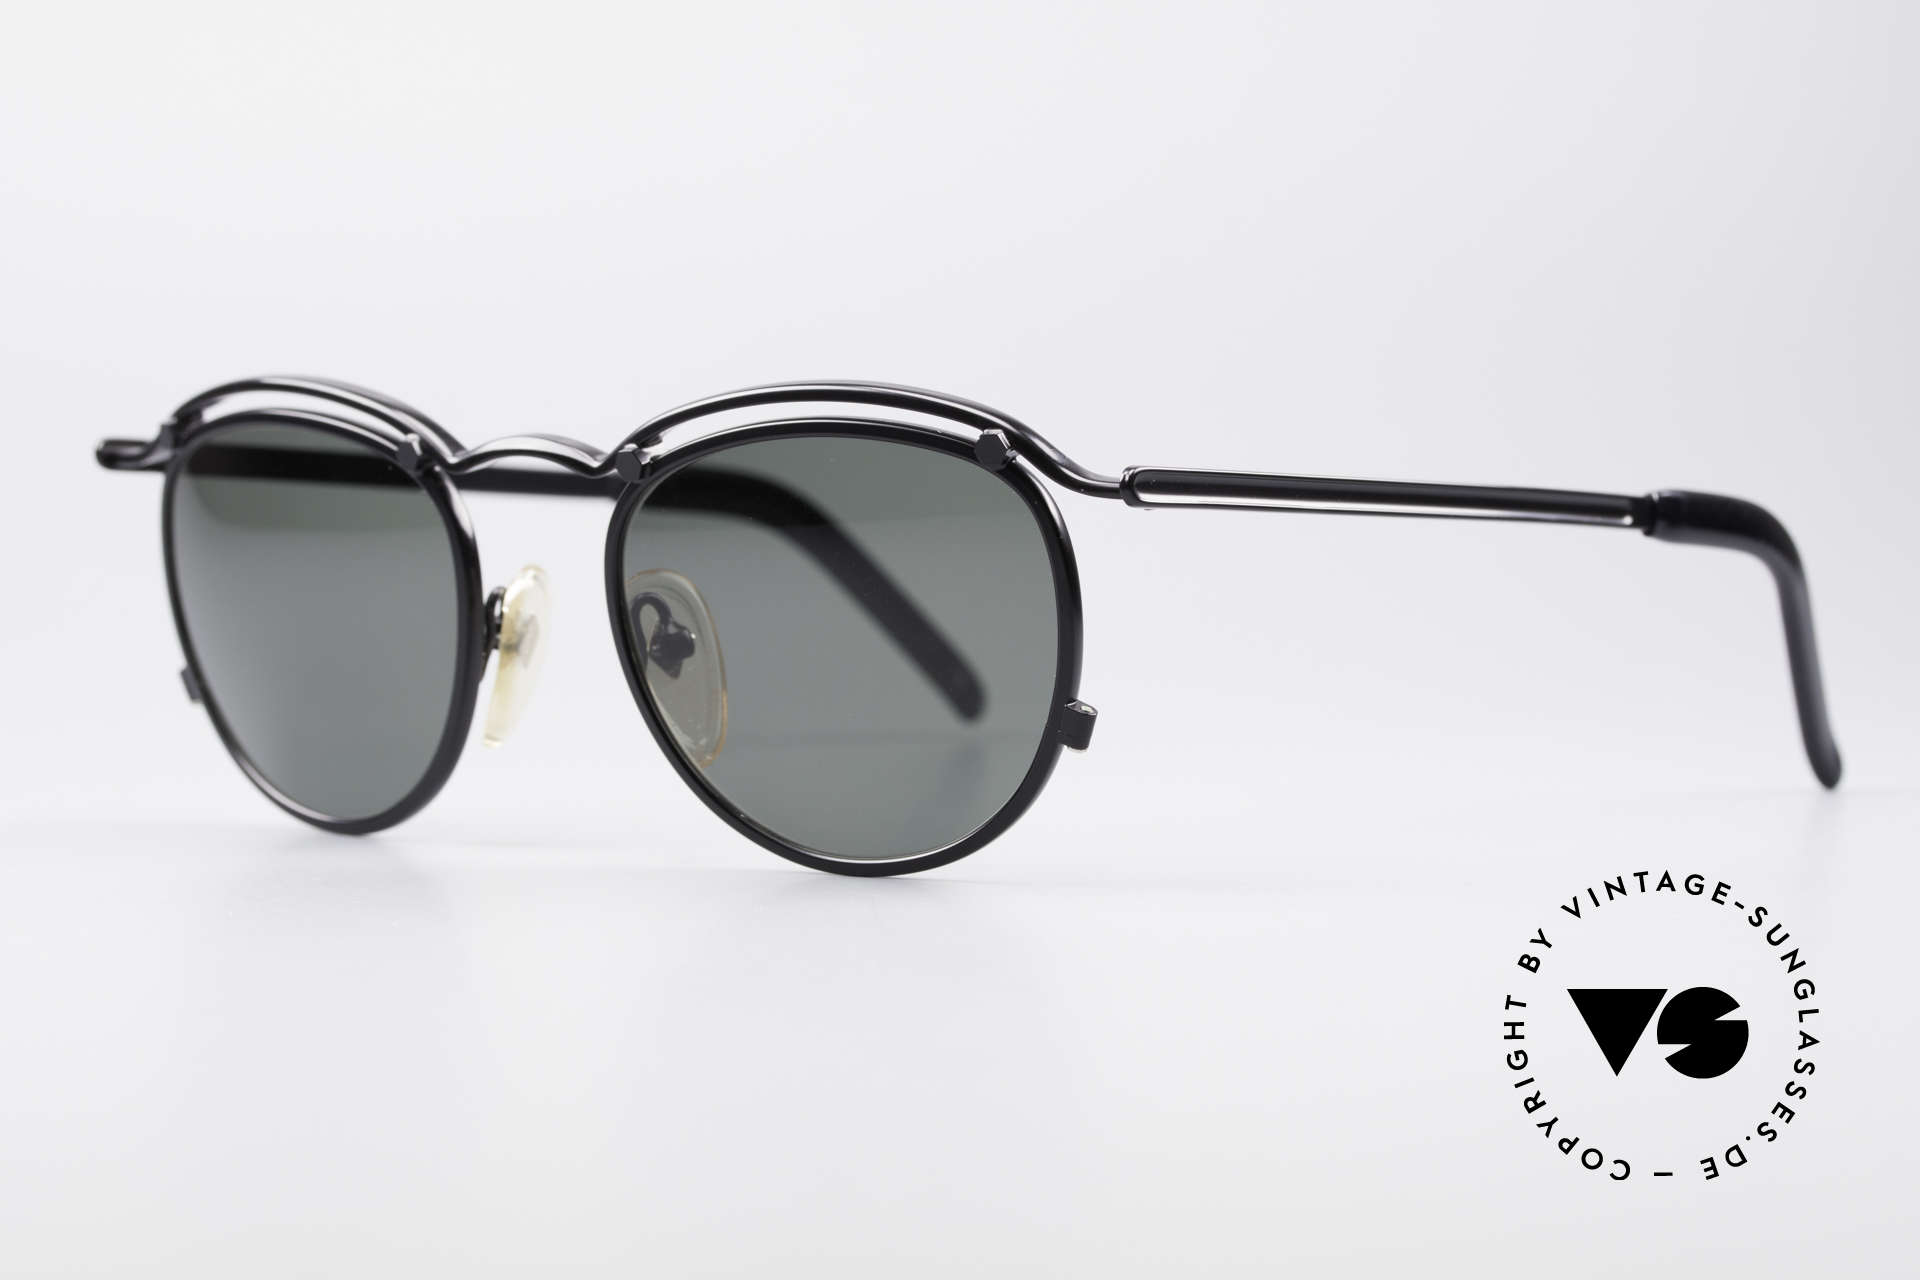 Jean Paul Gaultier 56-1174 Steampunk Panto Glasses, ultra stable metal frame (built to last) in black color, Made for Men and Women